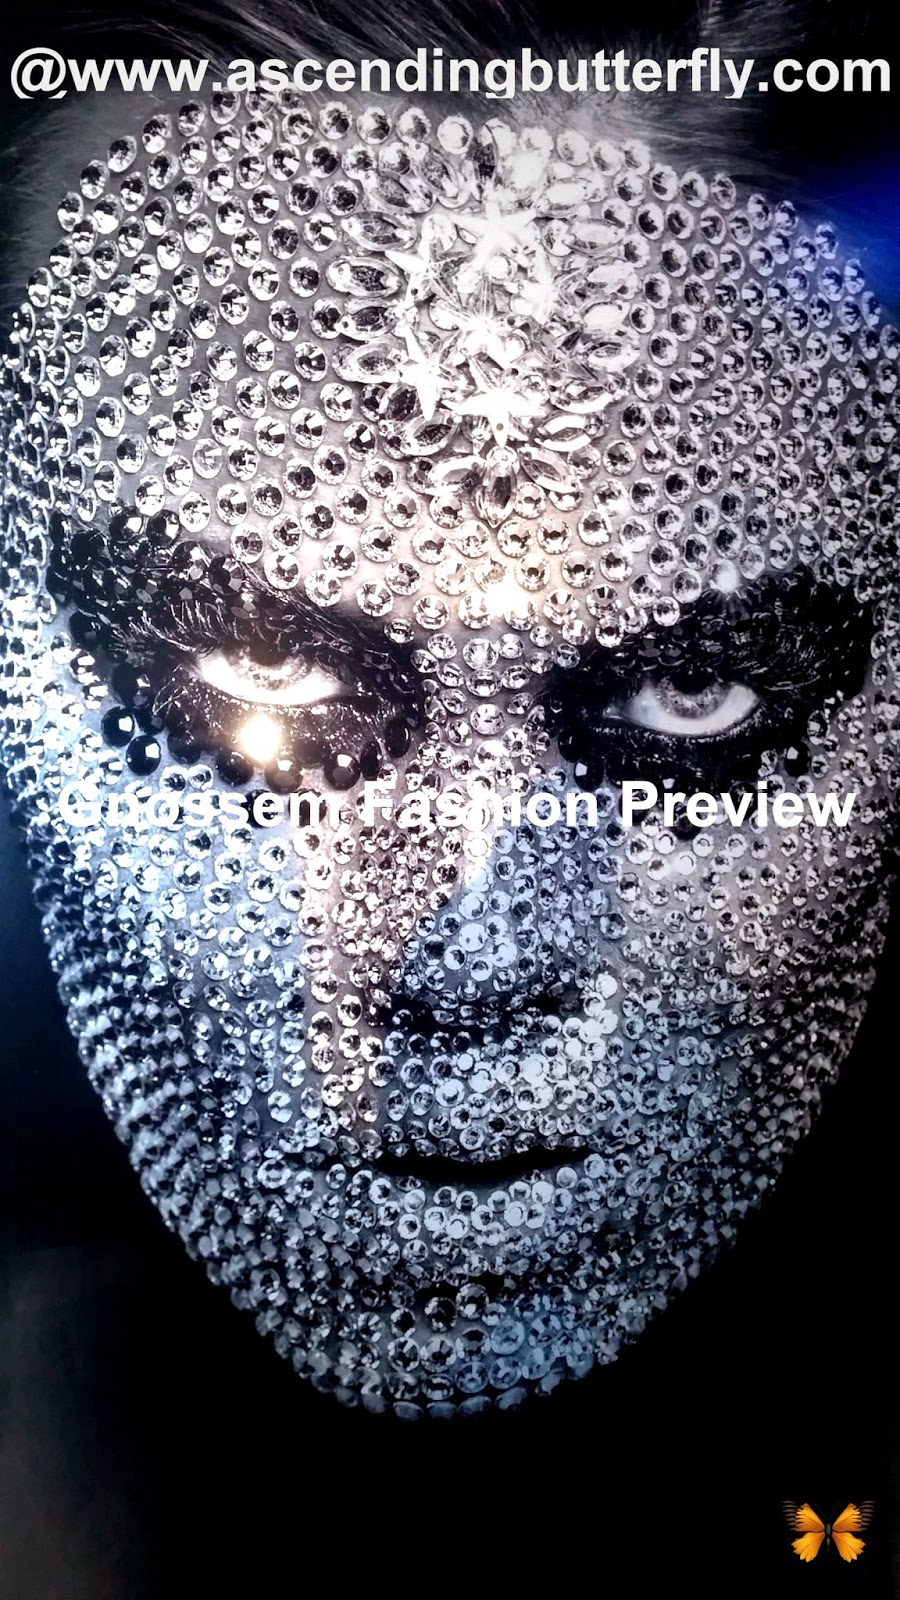 Gnossem Fashion Preview Maserati NYC Showroom February 2013 Poster Closeup